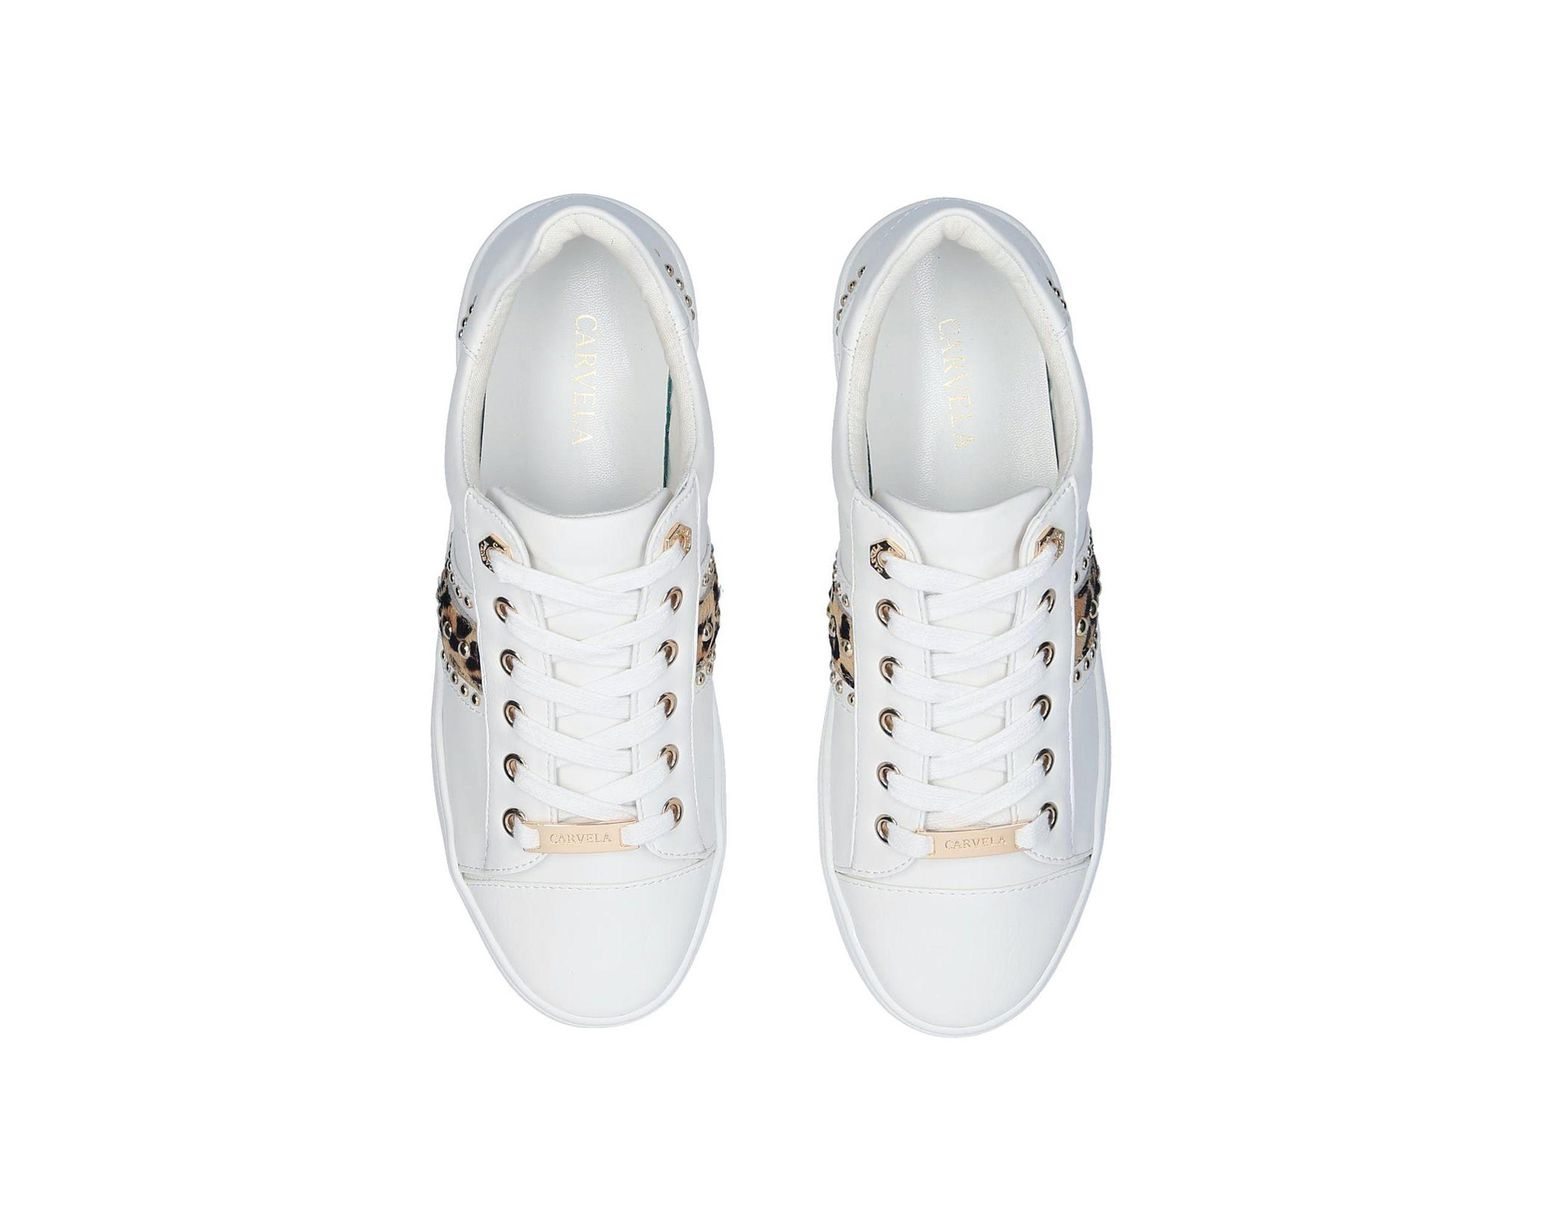 2a15cd501339 Carvela Kurt Geiger White 'jargon' Embellished Trainers With Leopard Print  in White - Lyst